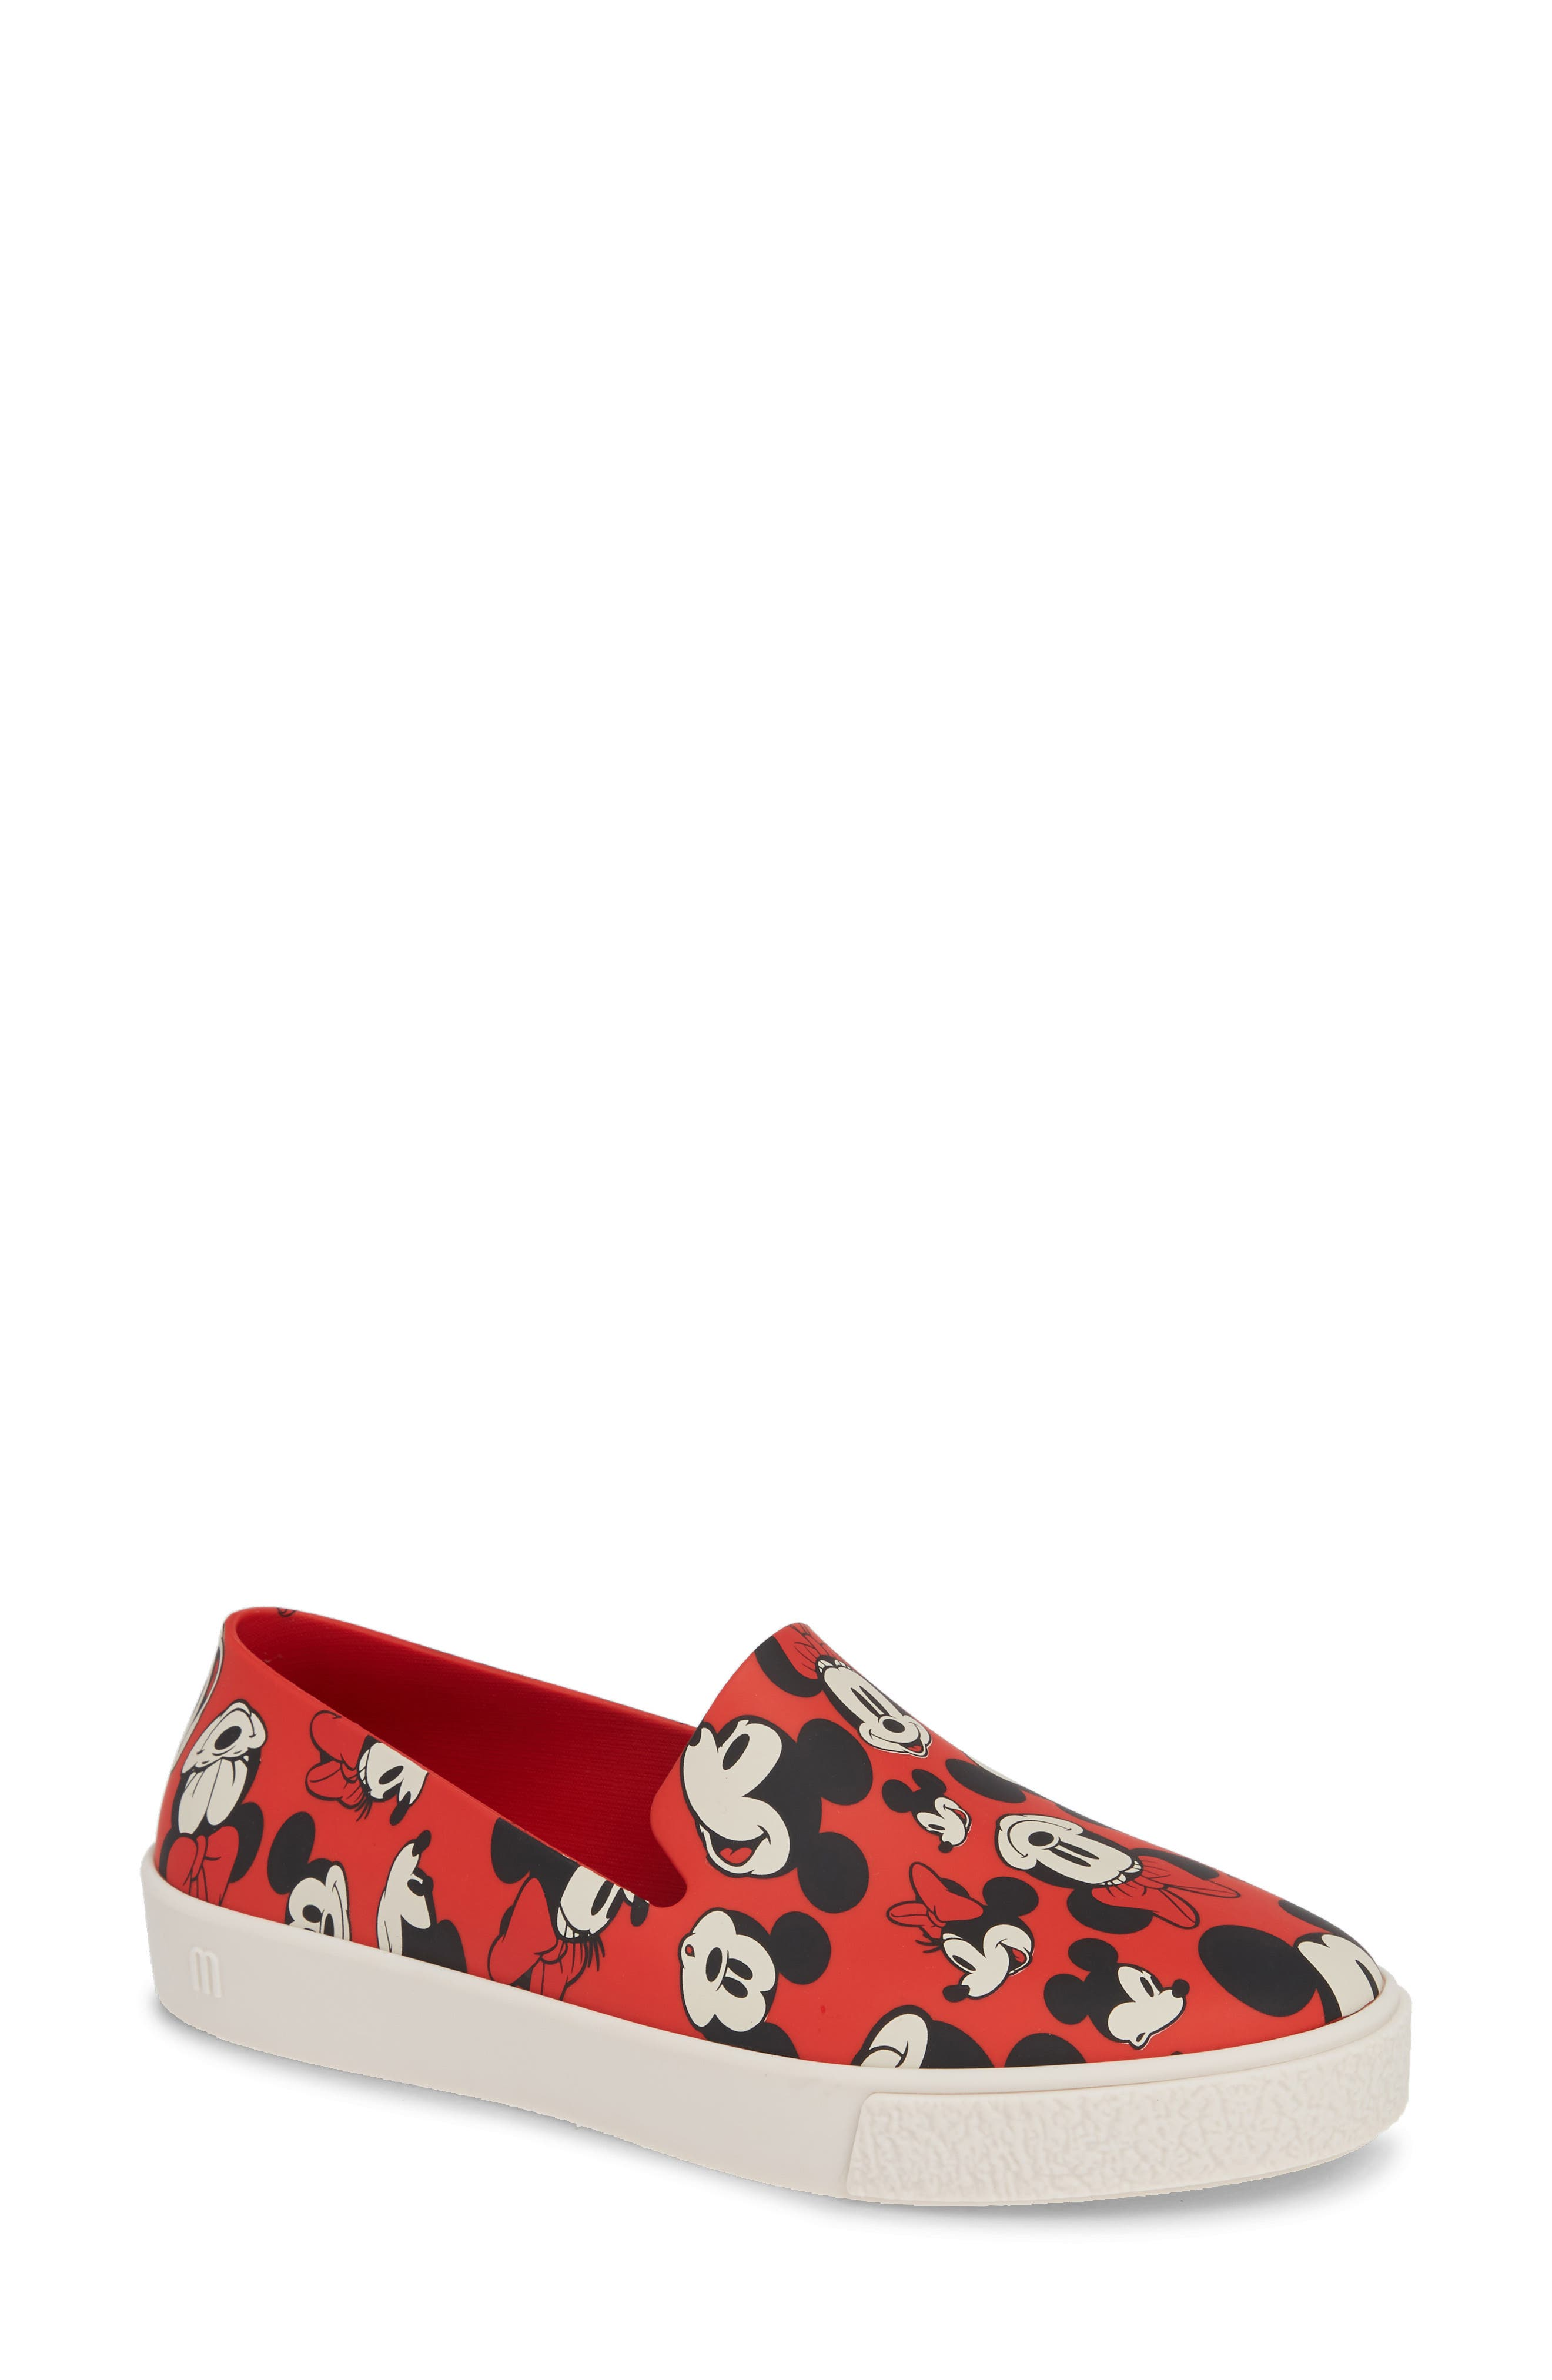 Ground Mickey Mouse Slip-On Sneaker,                             Main thumbnail 1, color,                             RED/ WHITE FABRIC